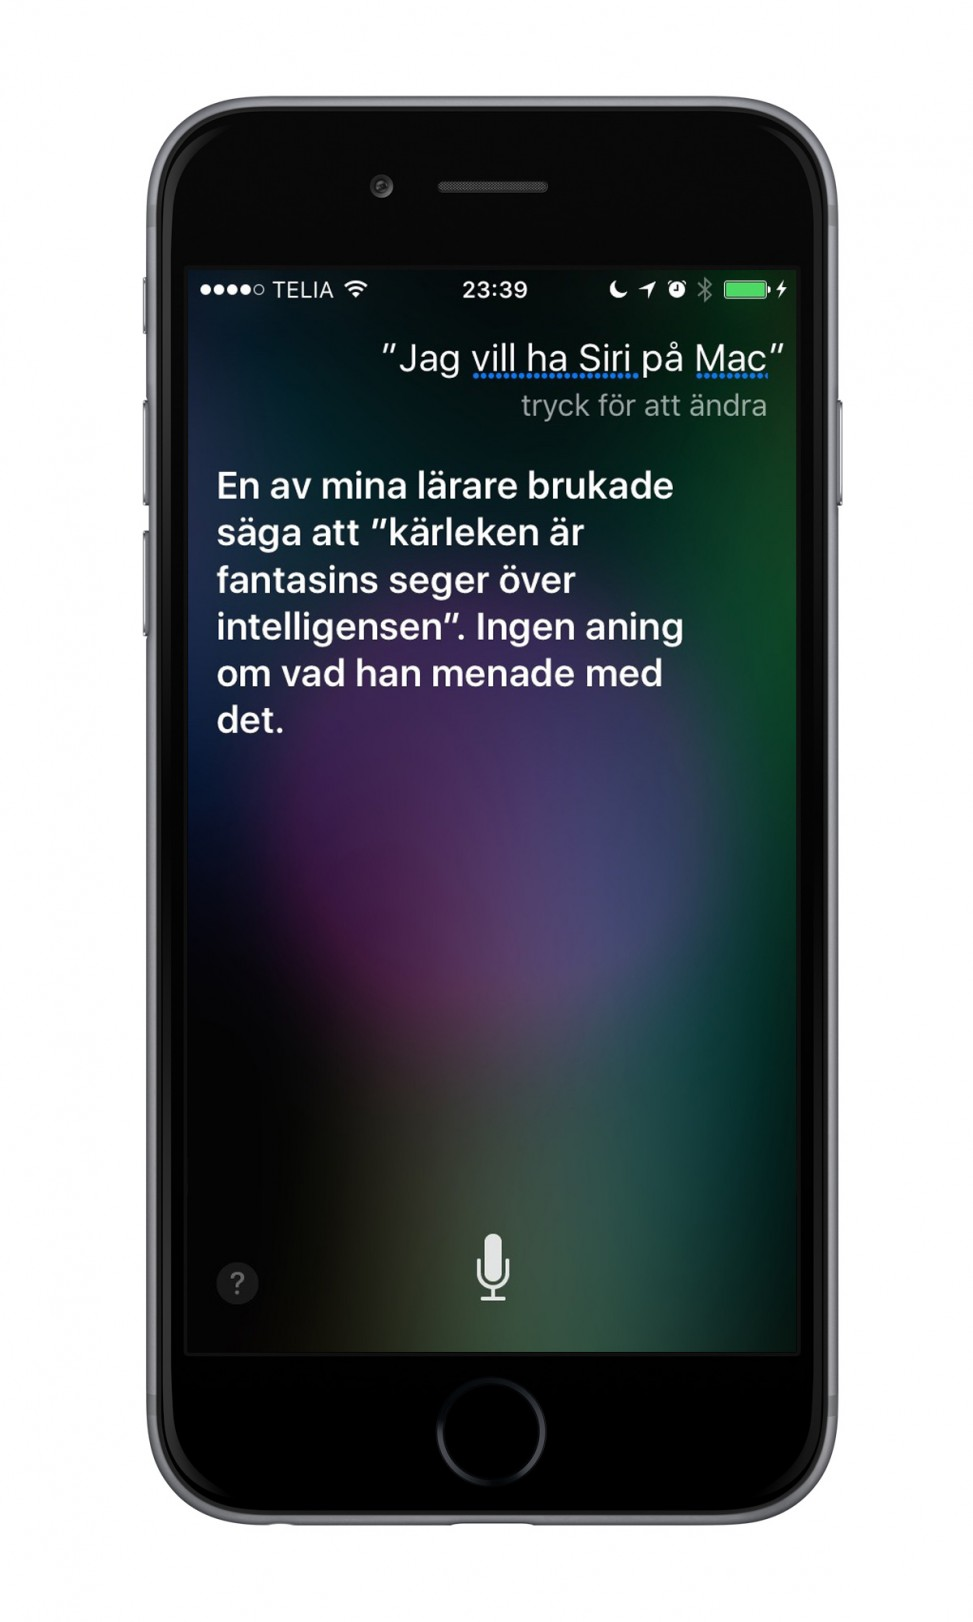 iPhone 6 Siri för Mac